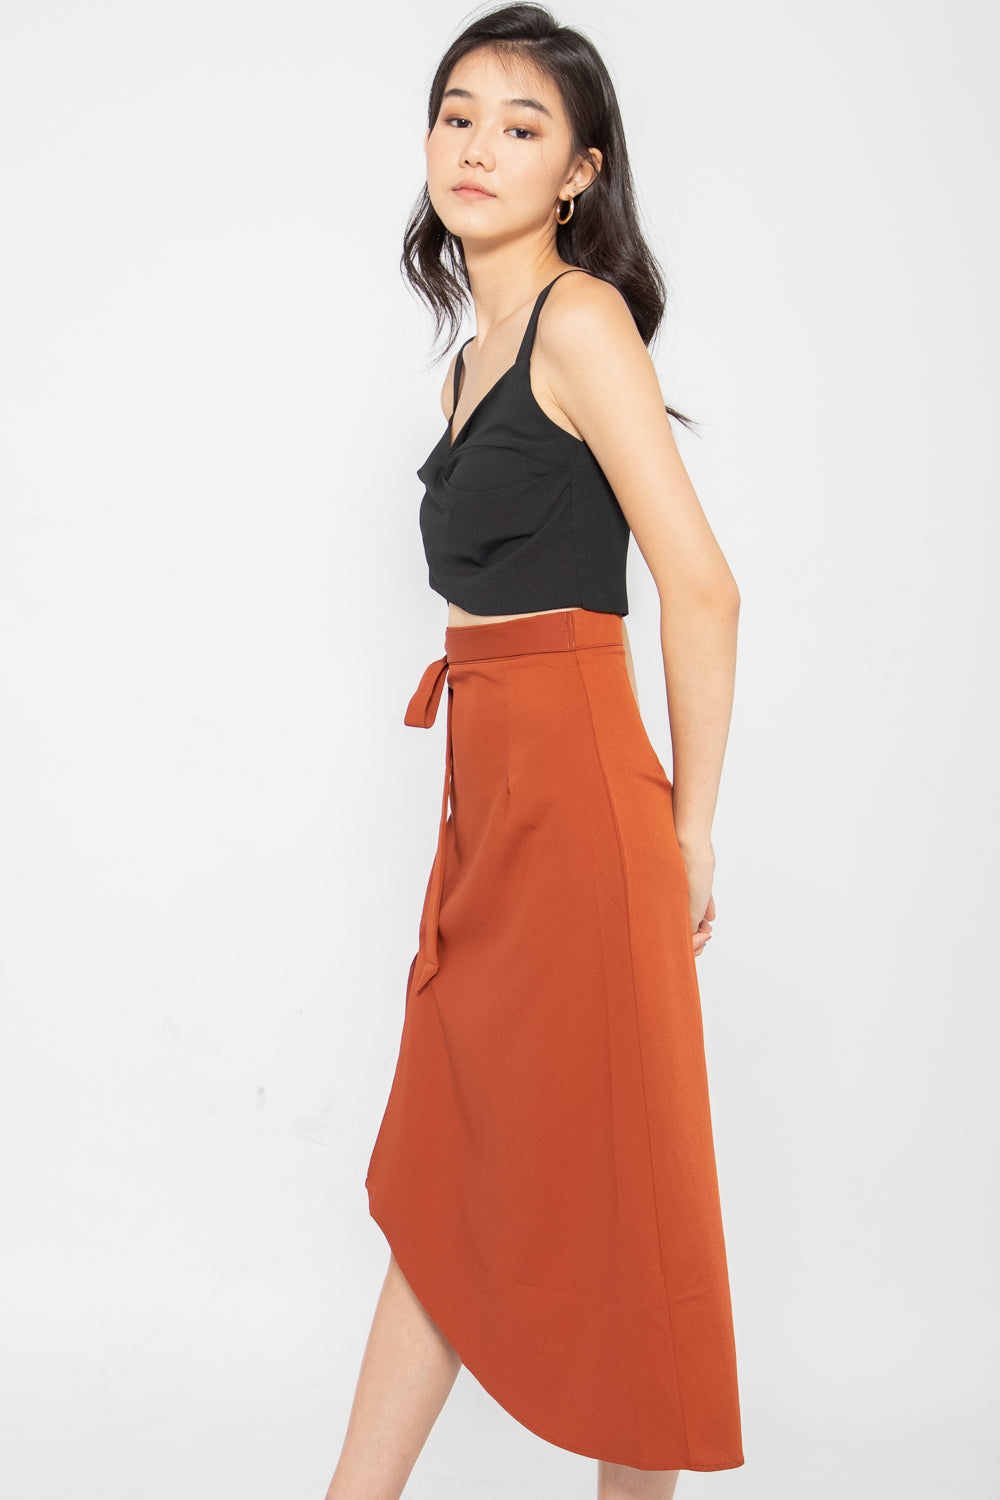 *Restocked* Dulce Side Slit Midi Skirt in Rust - Three One Duo